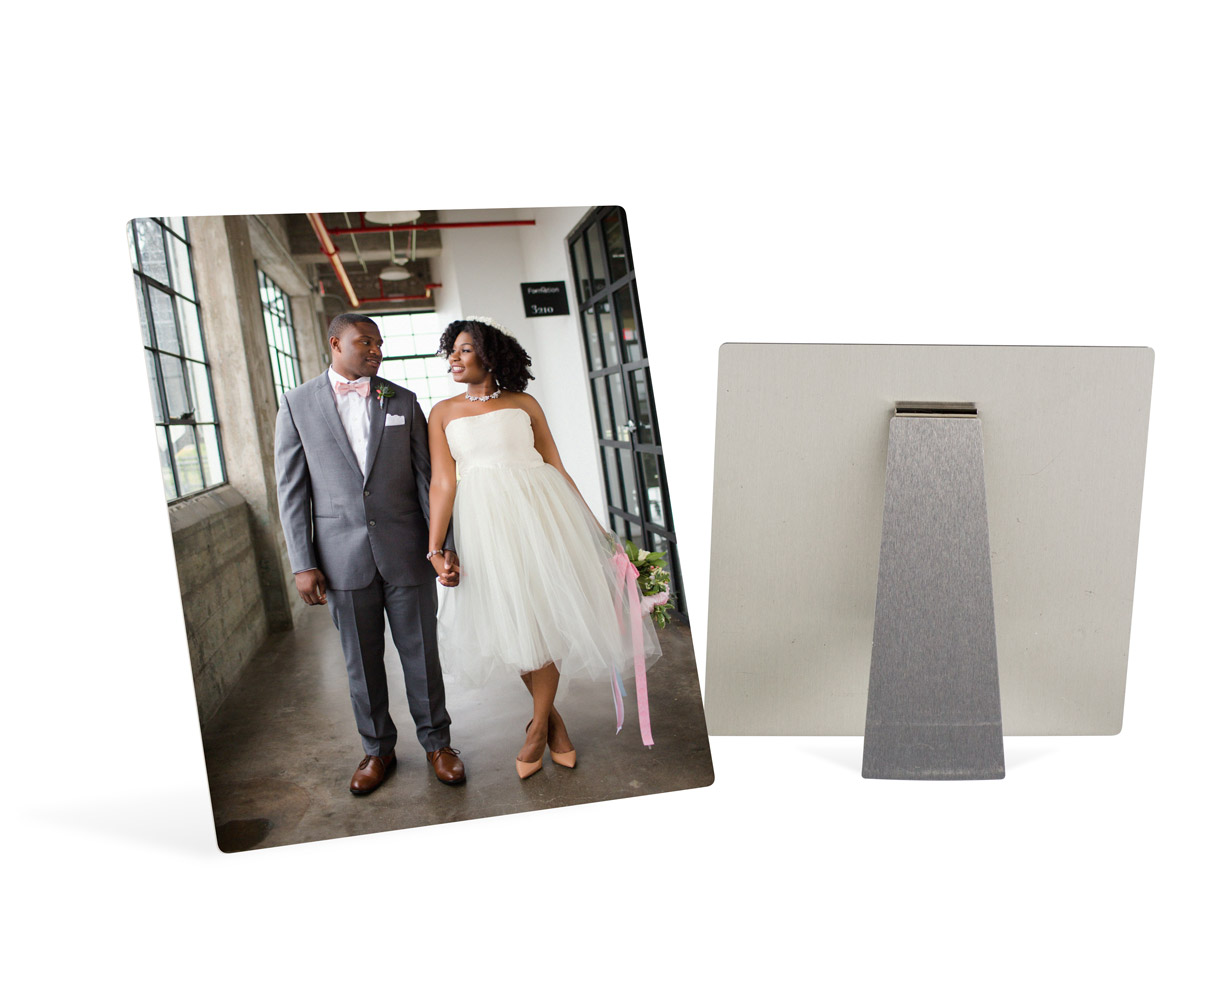 Metal prints are a modern option for printing your images and brightening up any workspace or home. Display with an easel or go for a dramatic stand alone statement 4x6 - 30x60 inch white gloss finish makes images pop with rich colors. Metals steal the show!